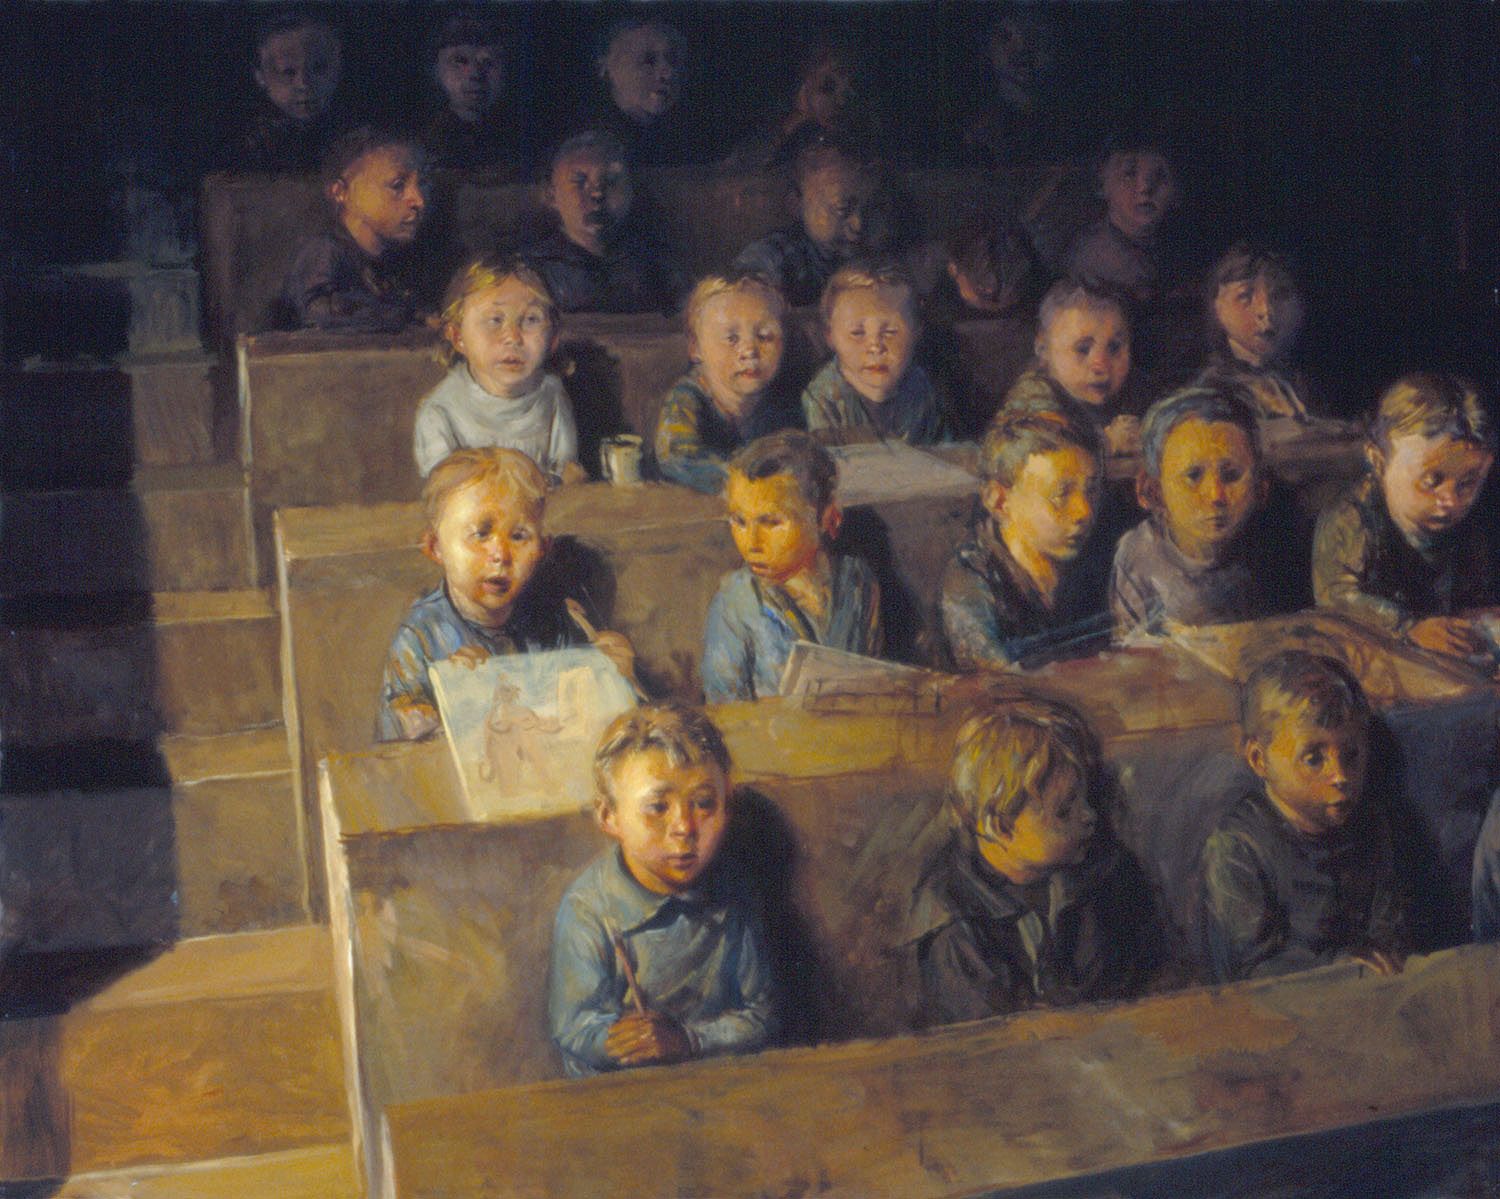 Kids , oil on canvas, 48 x 60 in, 2000